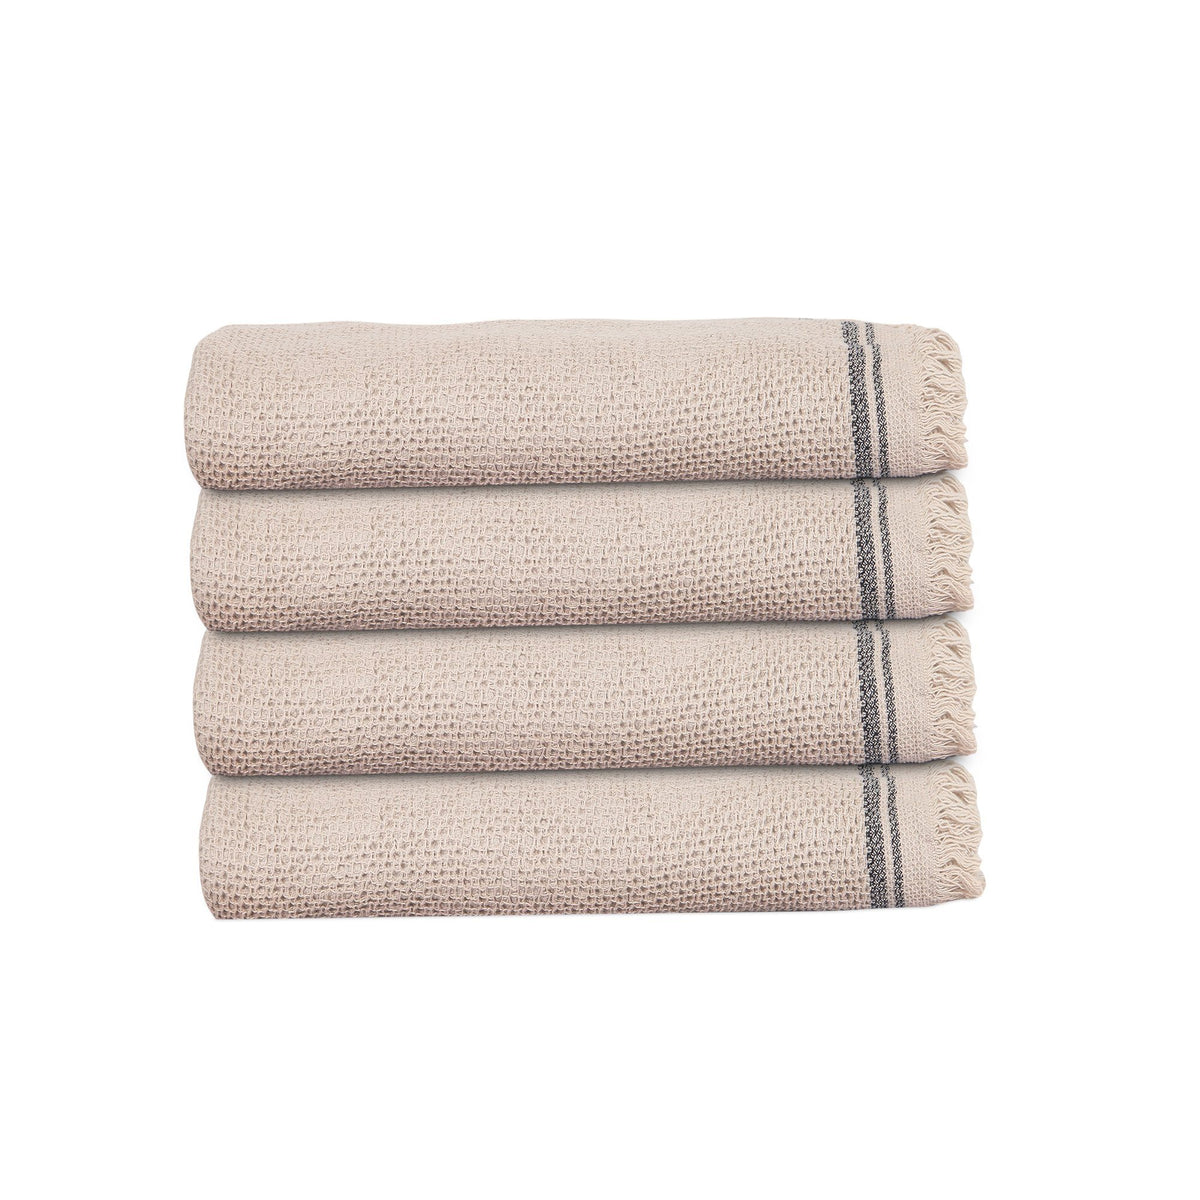 Lush Loom Turkish Hand / Kitchen Towel Bundle